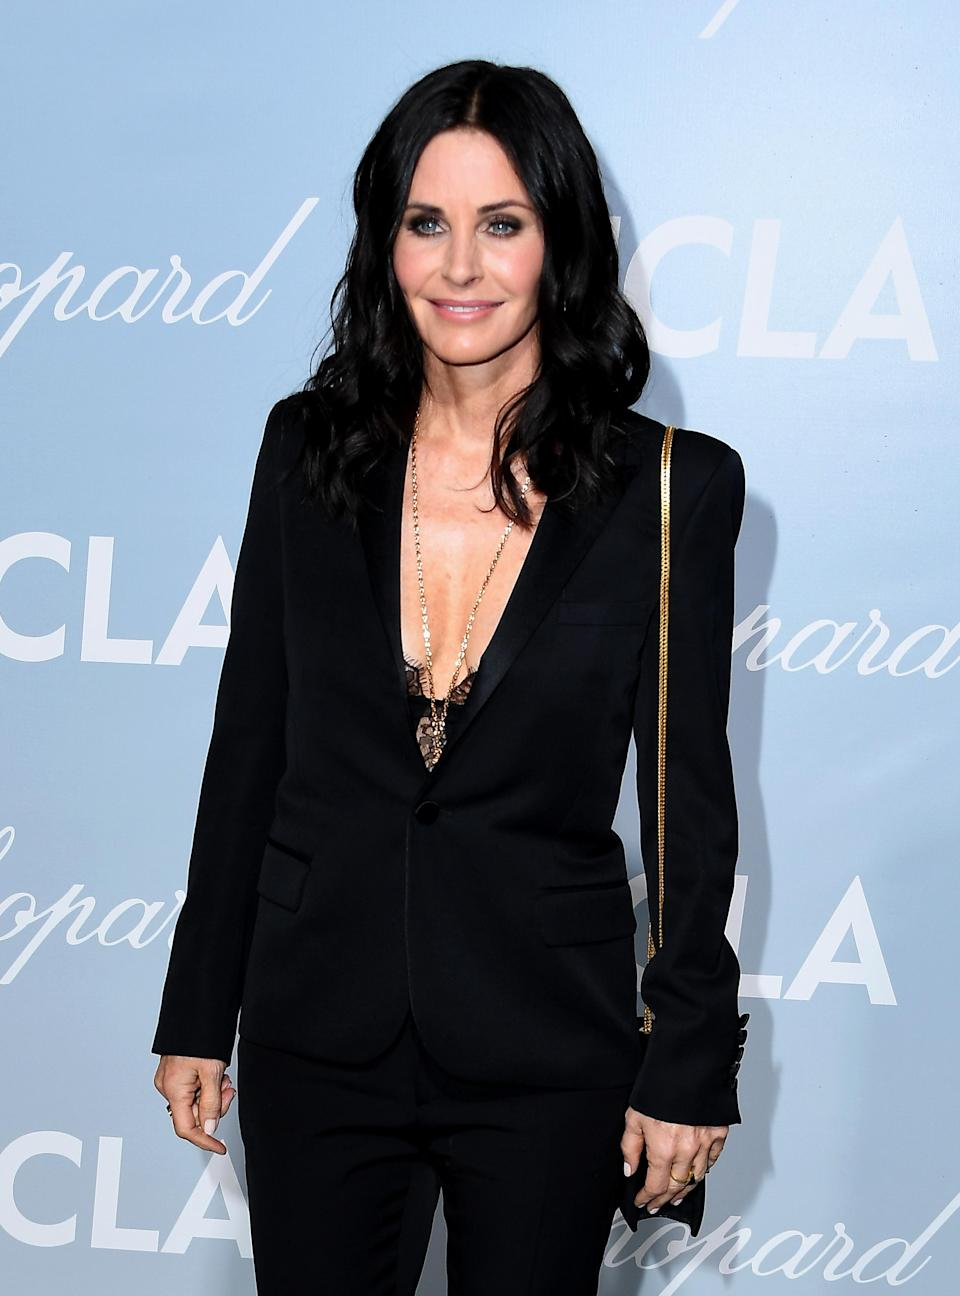 """<p>The former 'Friends' actress got candid about her plastic surgery regrets during an interview with <a rel=""""nofollow noopener"""" href=""""https://www.newbeauty.com/blog/dailybeauty/11013-courteney-cox-beauty/"""" target=""""_blank"""" data-ylk=""""slk:New Beauty"""" class=""""link rapid-noclick-resp""""><em>New Beauty</em></a> magazine, admitting: """"You have no idea because it's gradual, until you go, 'Oh, sh*t. This doesn't look right.' And it's worse in pictures than in real life."""" The 54-year-old added, """"I've had all my fillers dissolved. I'm as natural as I can be. I feel better because I look like myself. I think that I now look more like the person that I was. I hope I do."""" <em>[Photo: Getty]</em> </p>"""